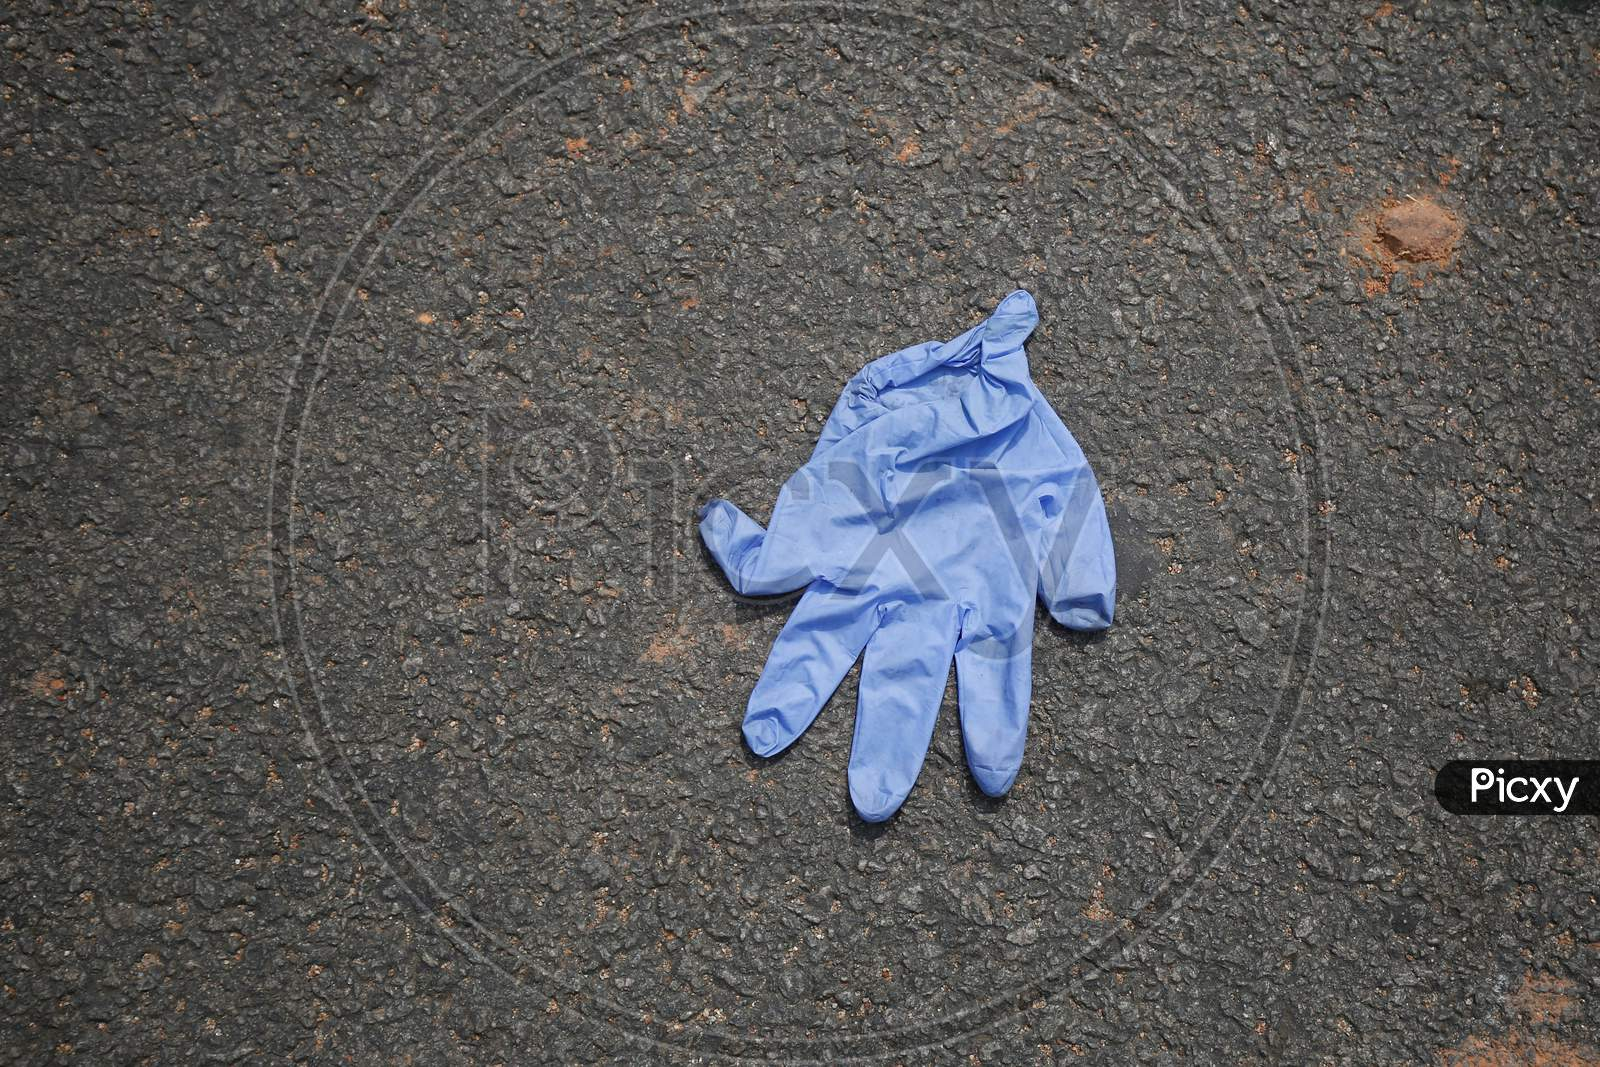 A discarded nitrile glove is seen on a road during the extended nationwide lockdown to prevent the spread of coronavirus (Covid-19) in Bangalore, India.